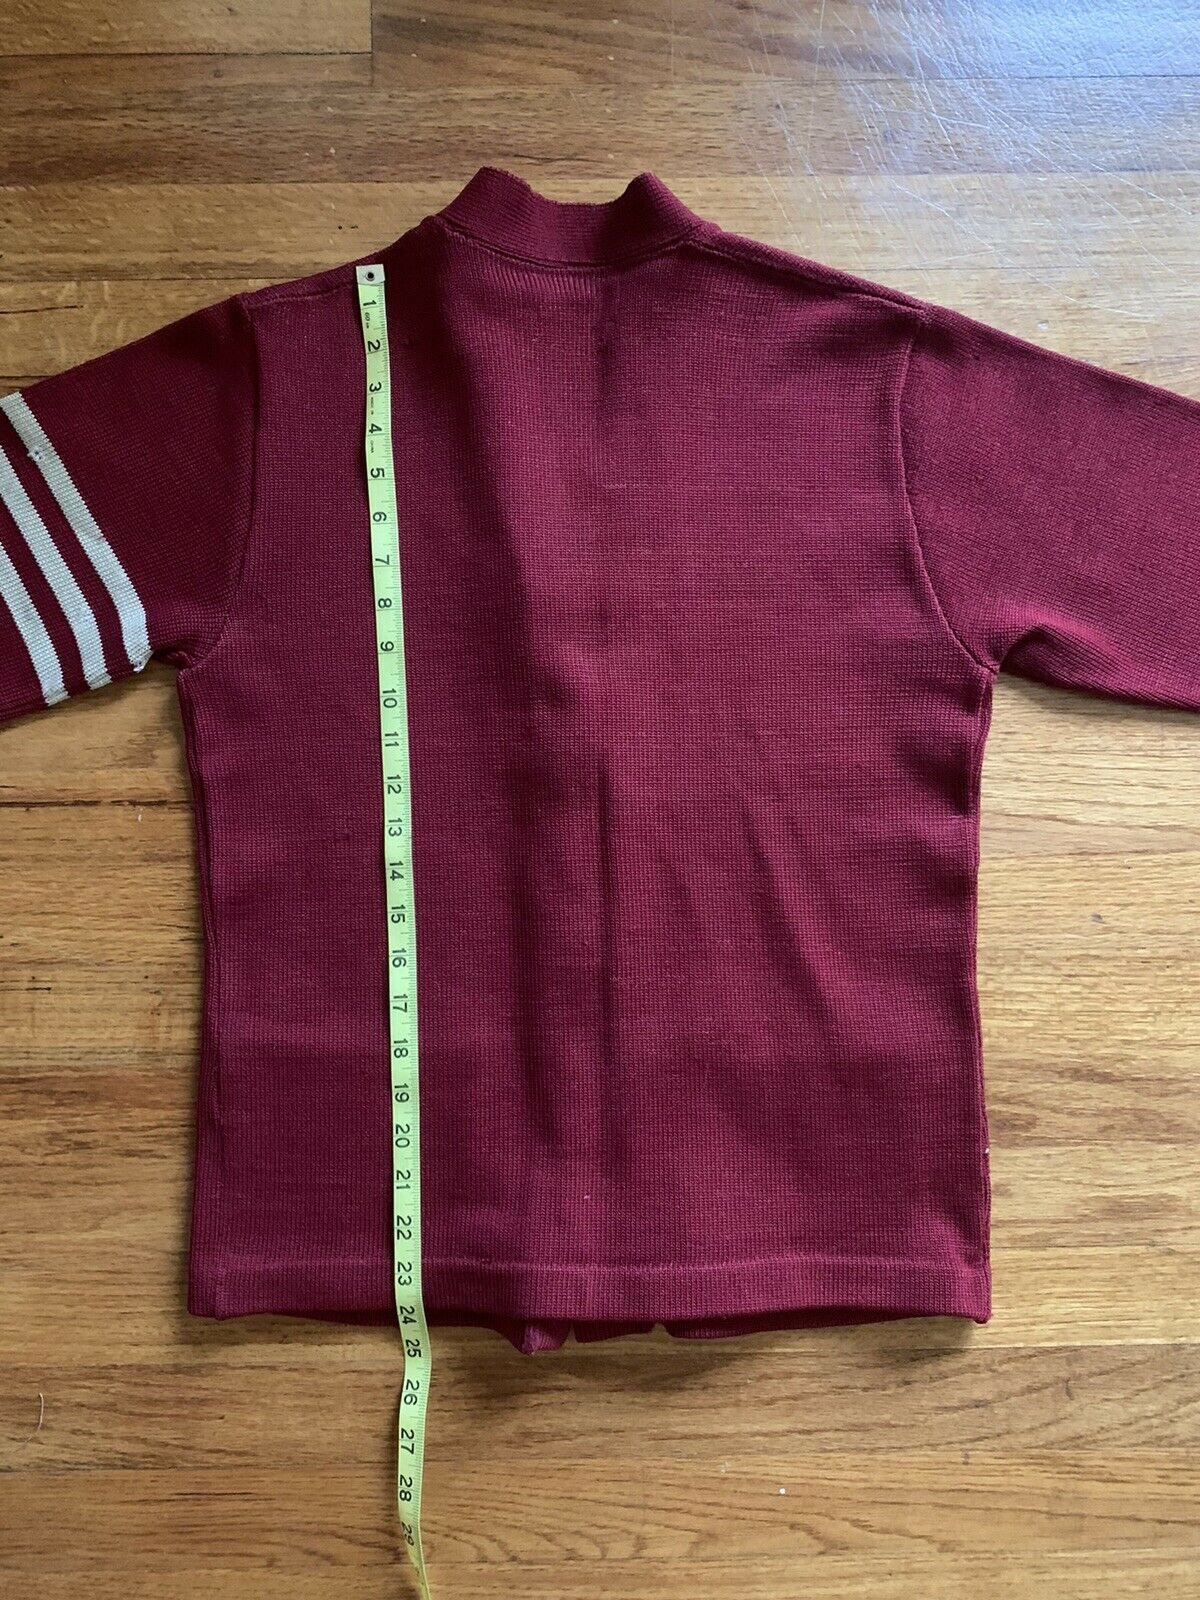 40's/50's Letterman Sweater Knit Cardigan Button … - image 11